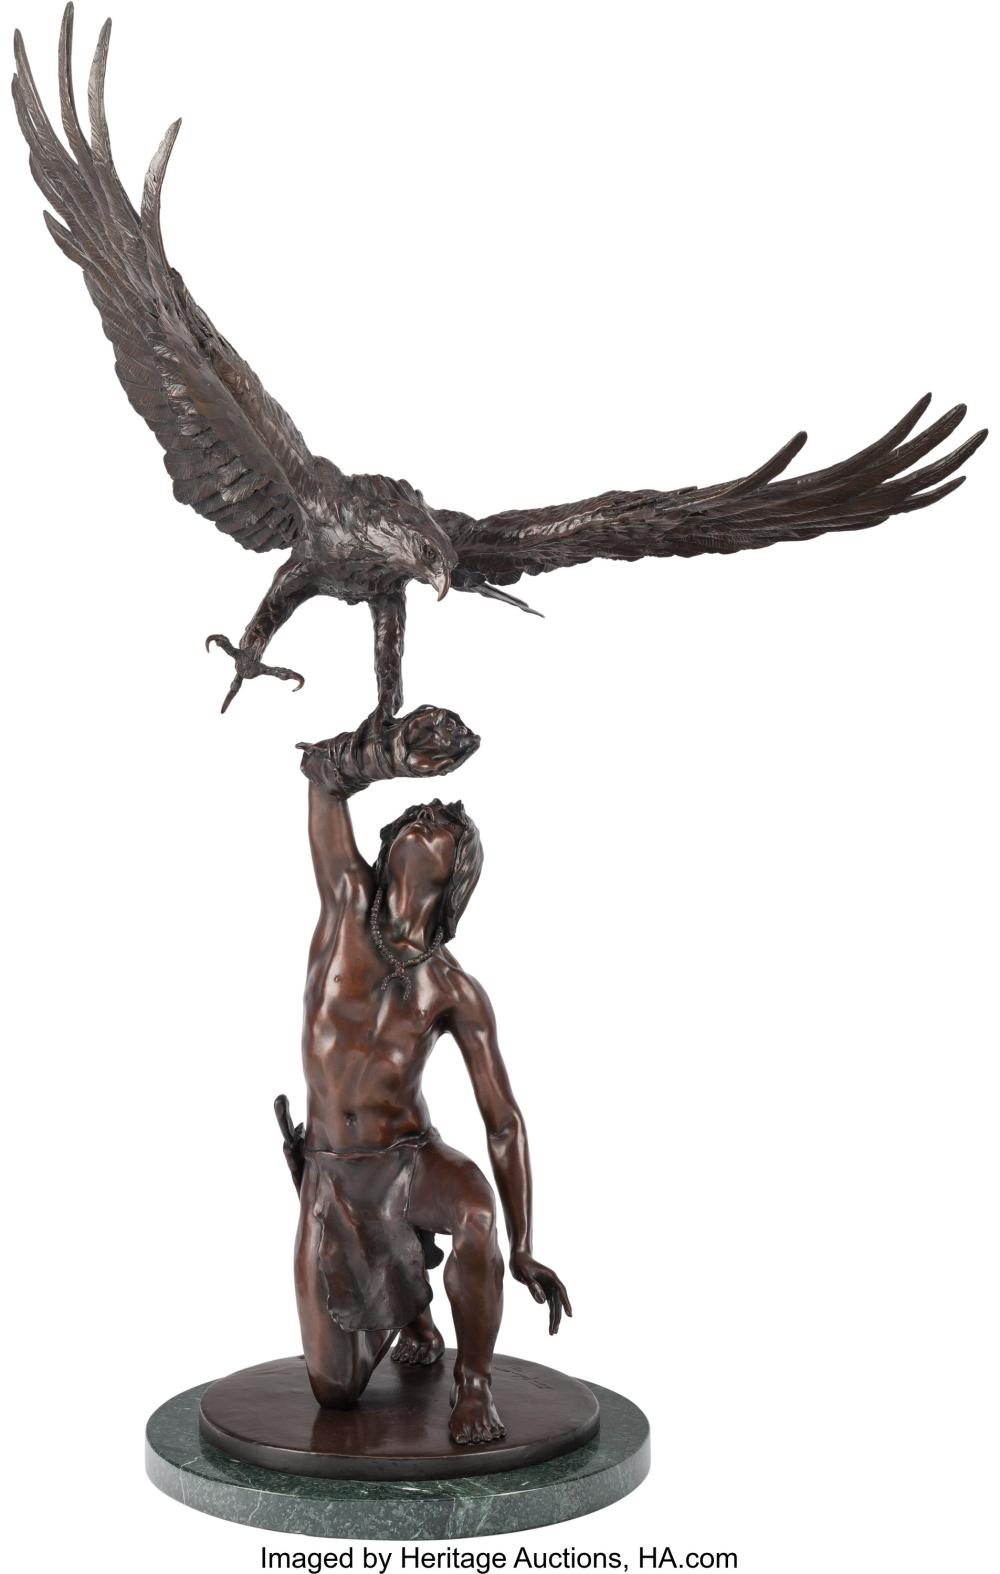 Stanley Quentin Johnson (American, 1939-2017) Eagle in Flight, 1981 Bronze with